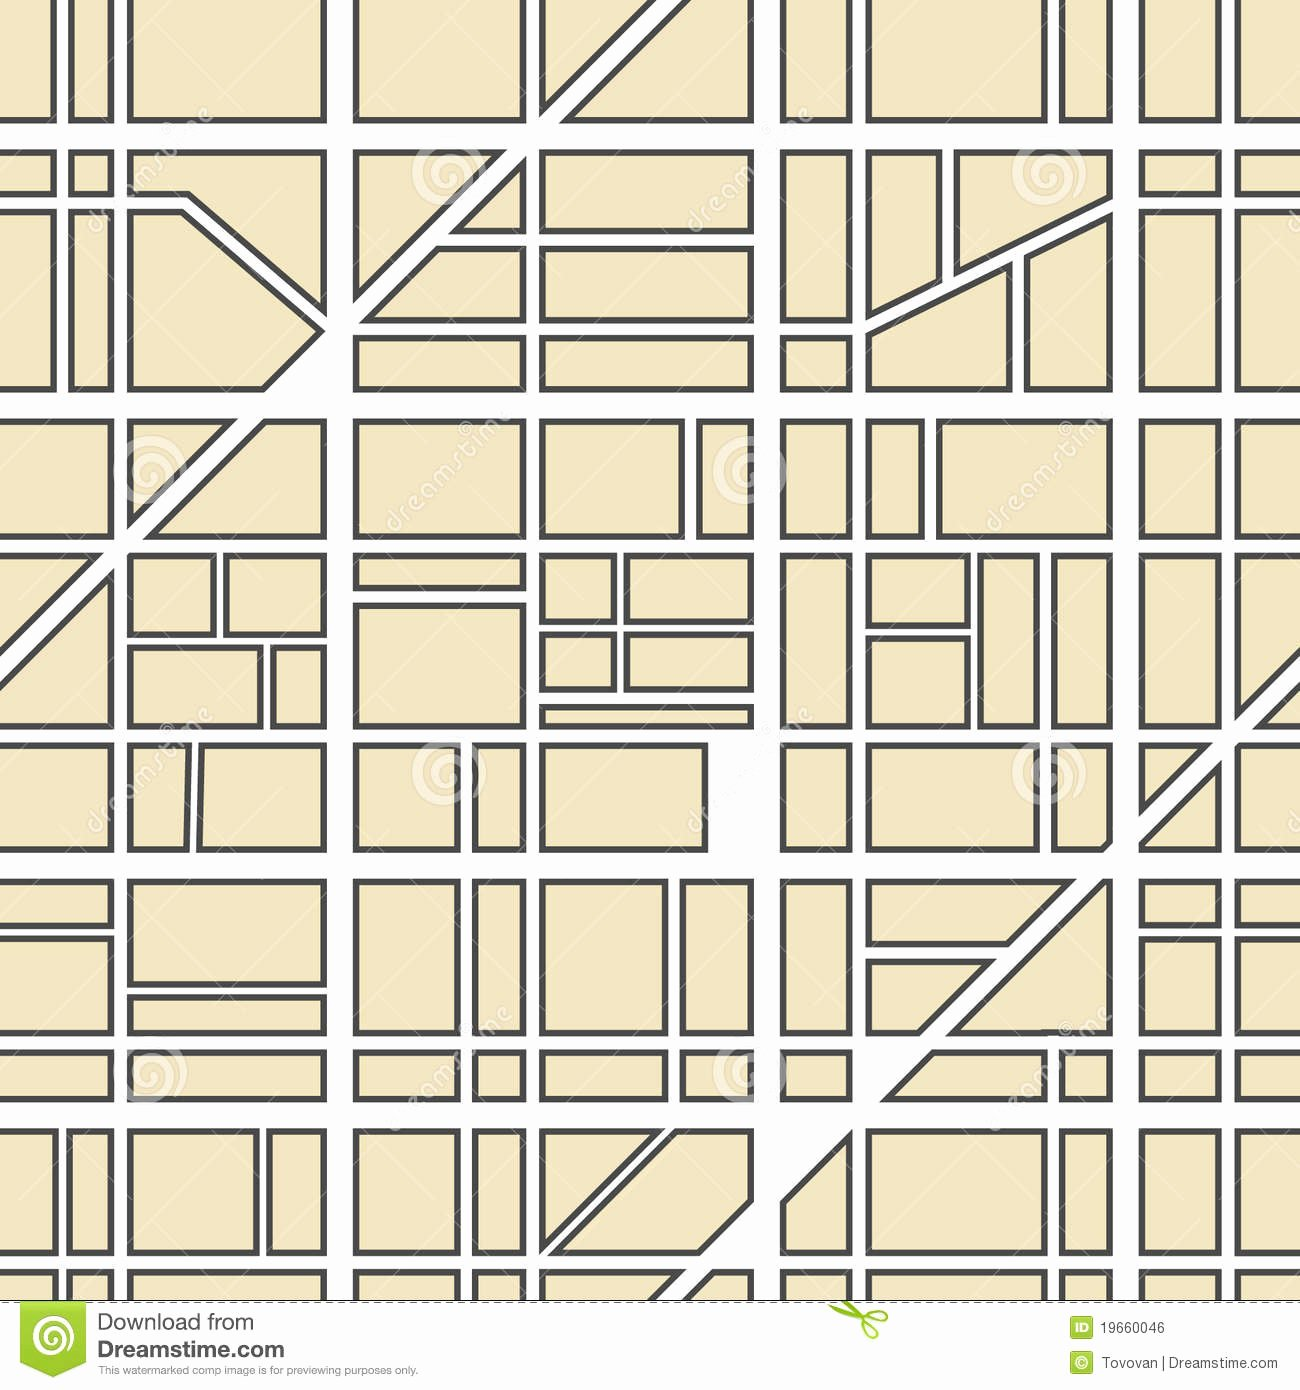 Blank City Map Template New City Street Map Clip Art – Cliparts